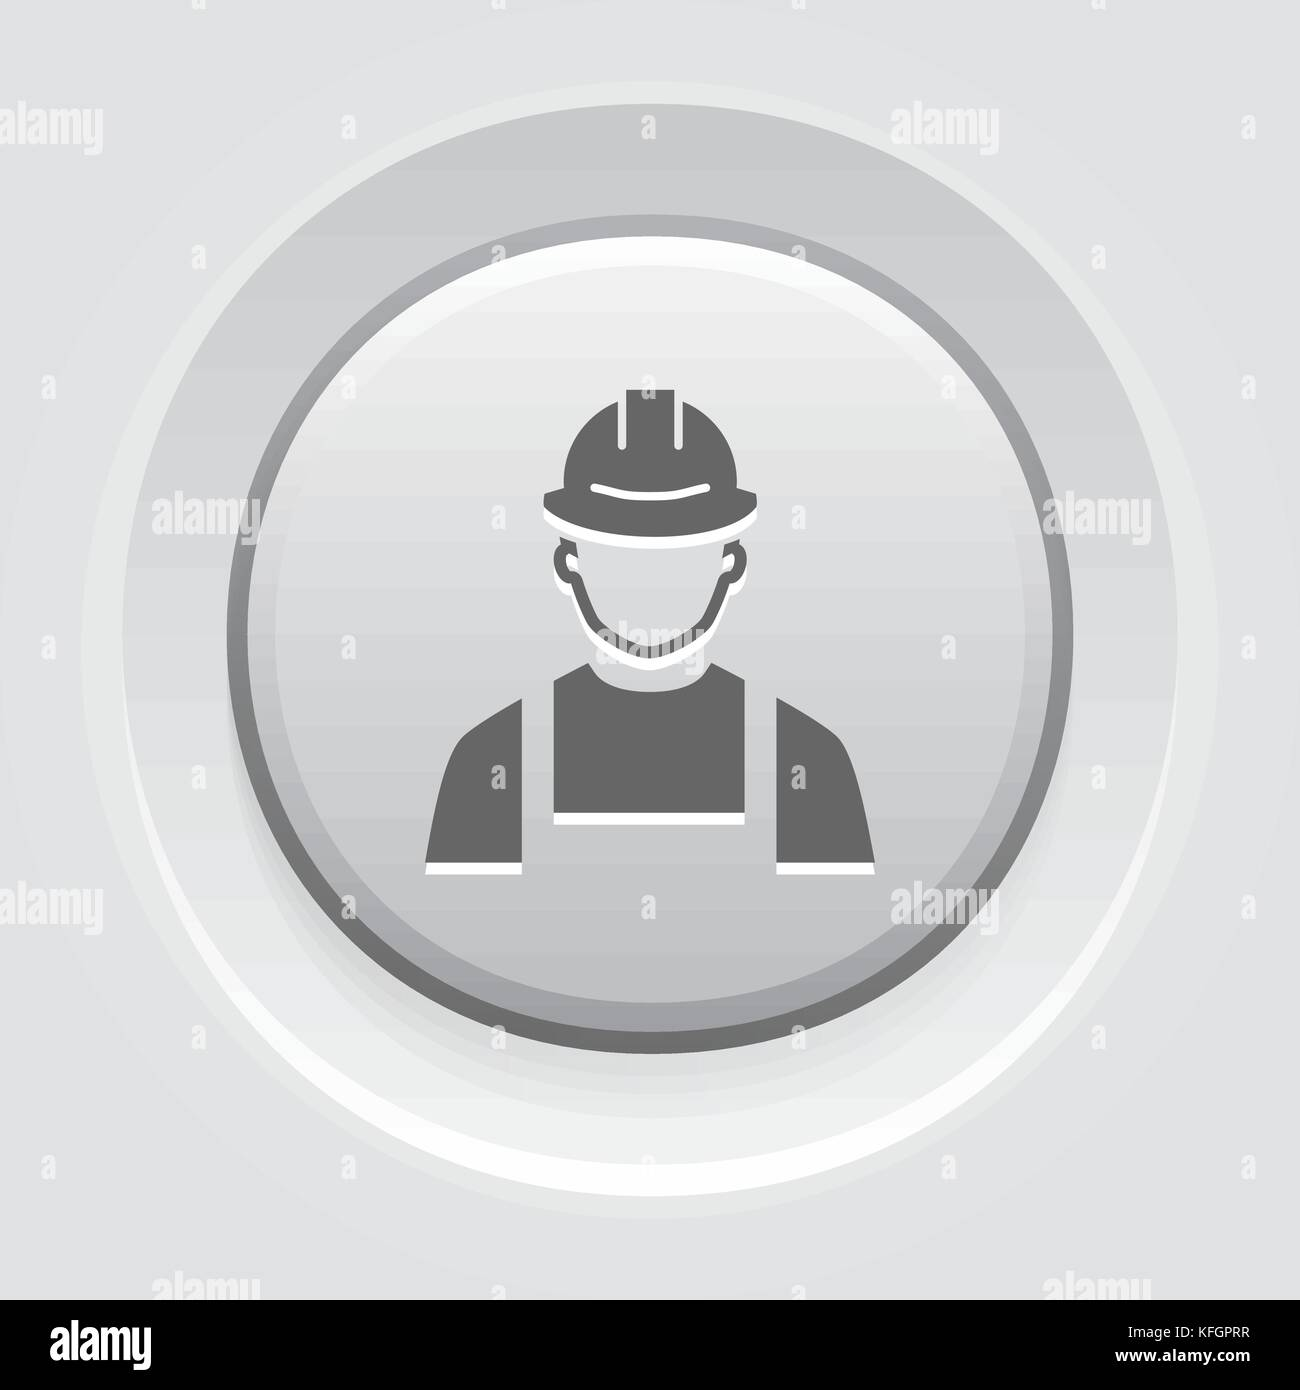 Software engineer stock vector images alamy engineer icon man in hard hat buider symbol stock vector biocorpaavc